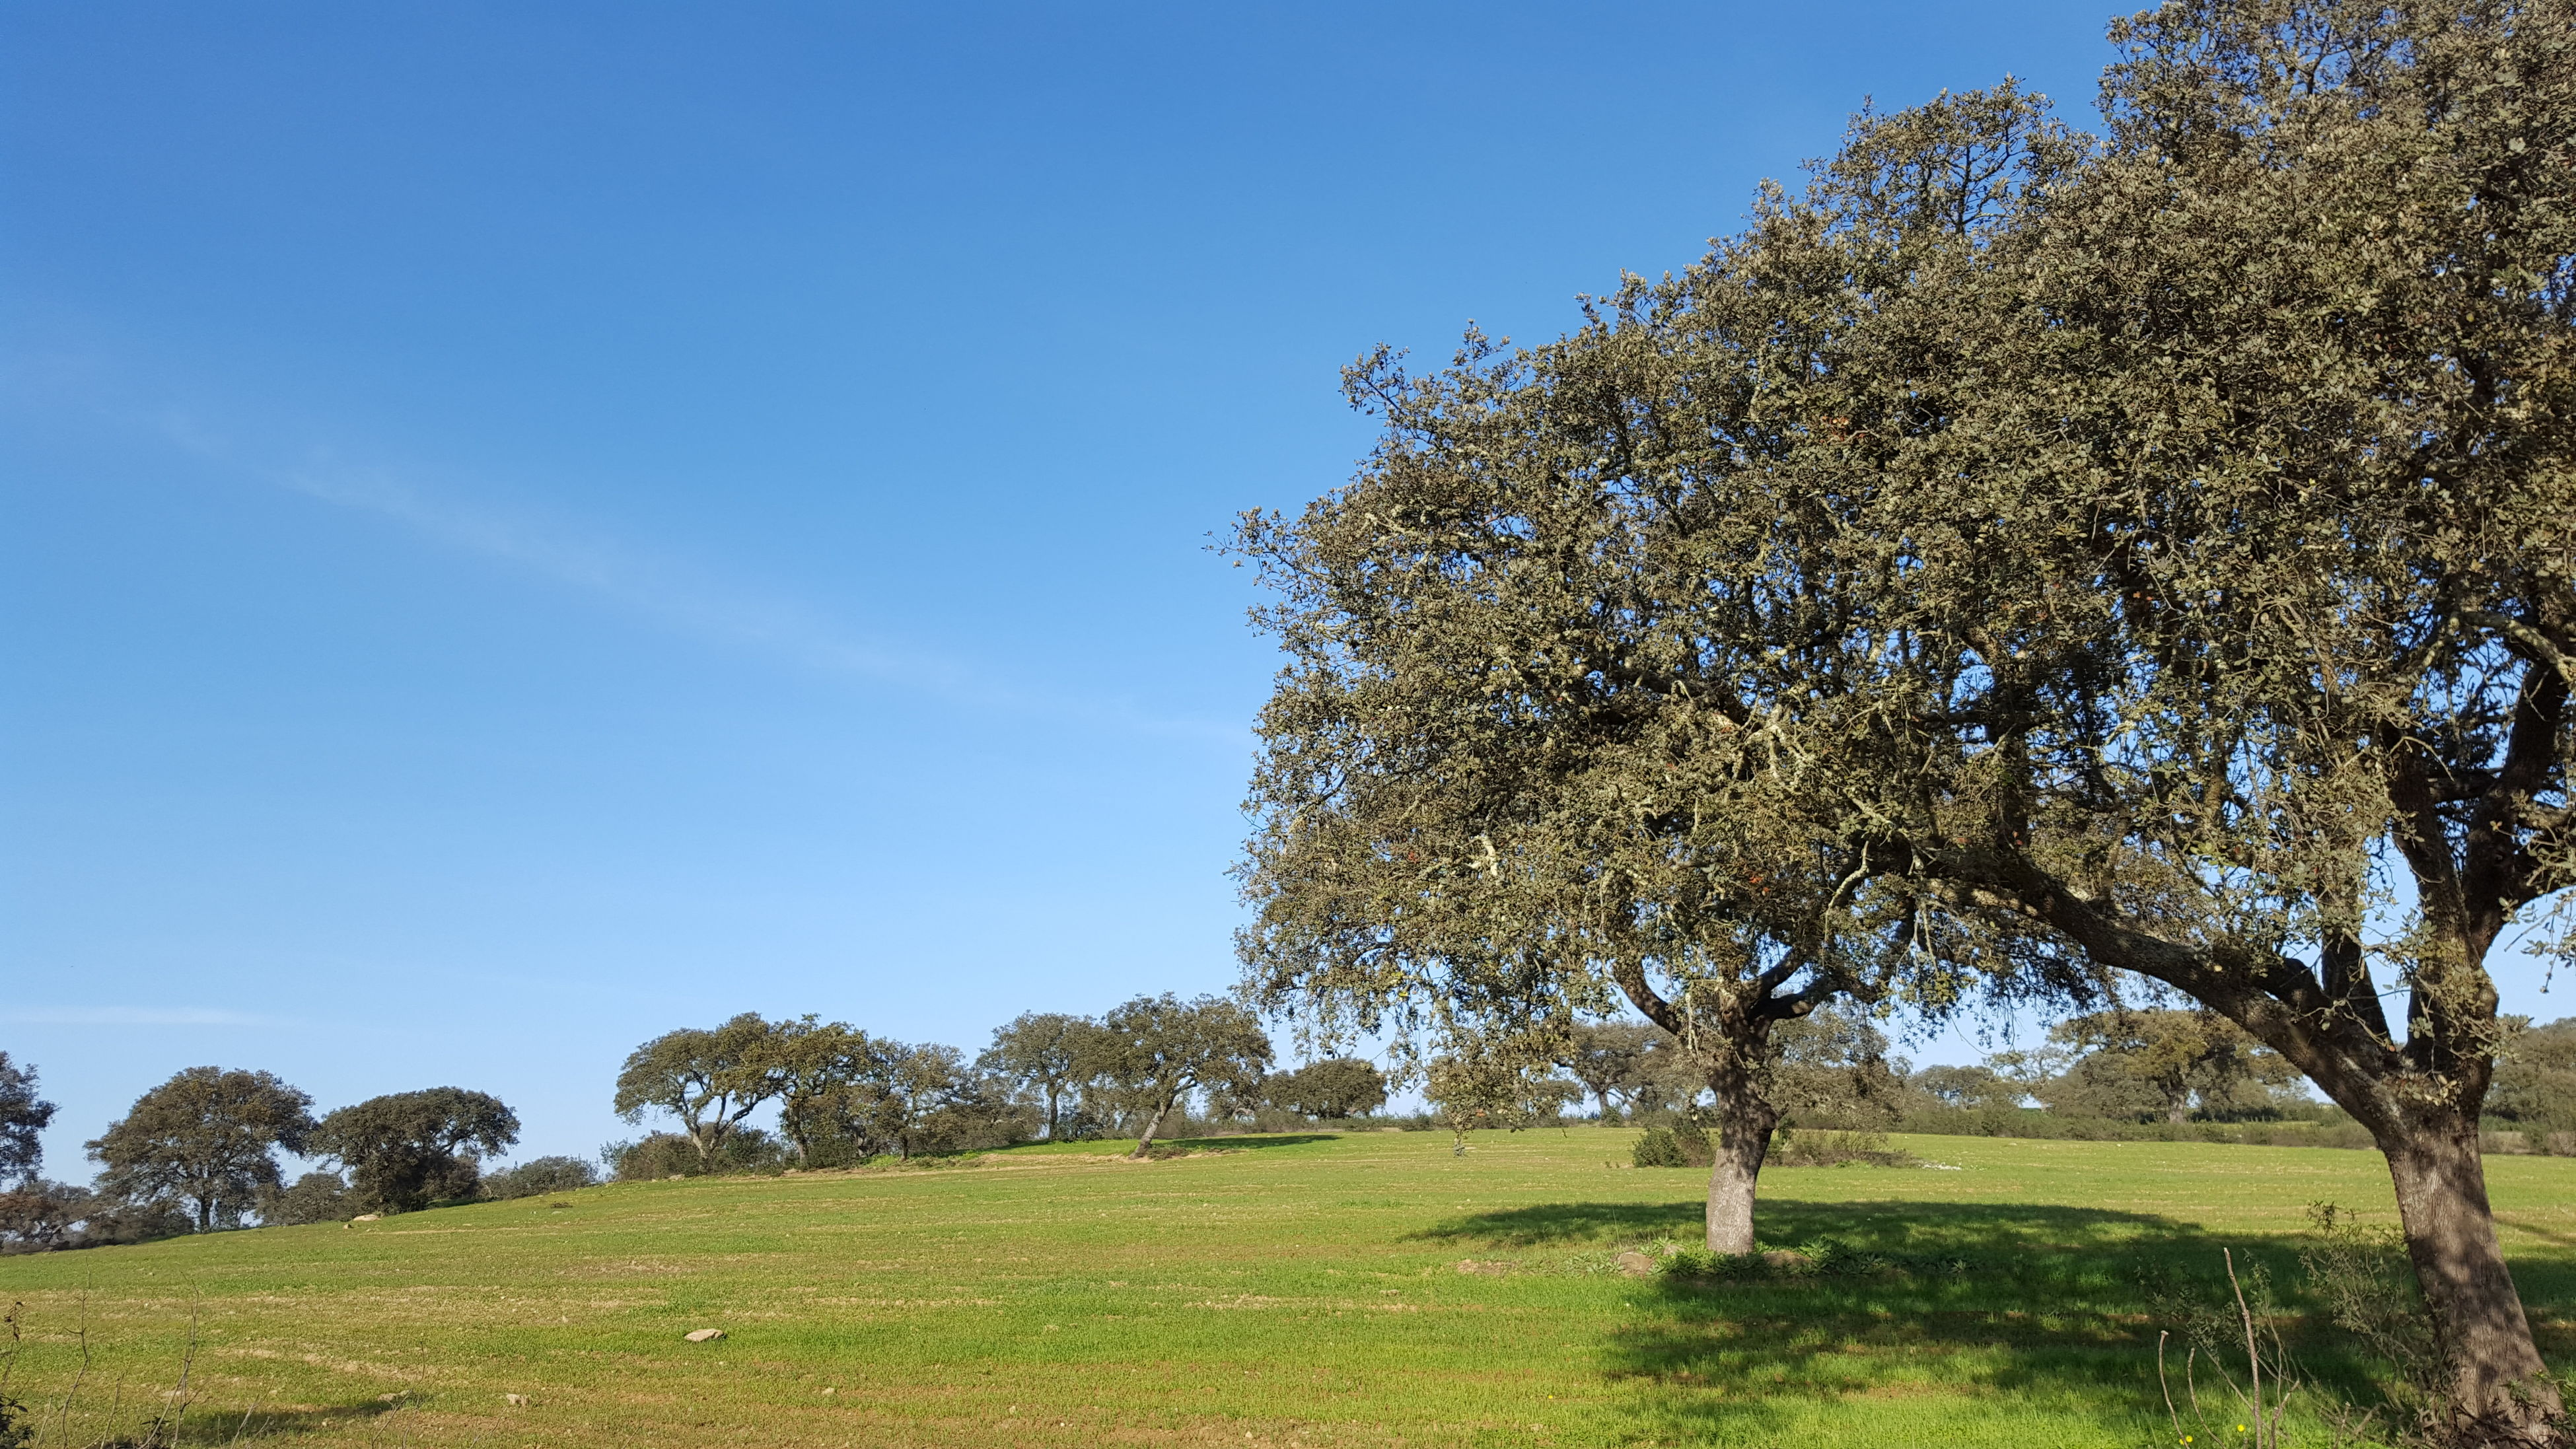 tree, growth, nature, clear sky, sky, beauty in nature, day, outdoors, no people, green color, grass